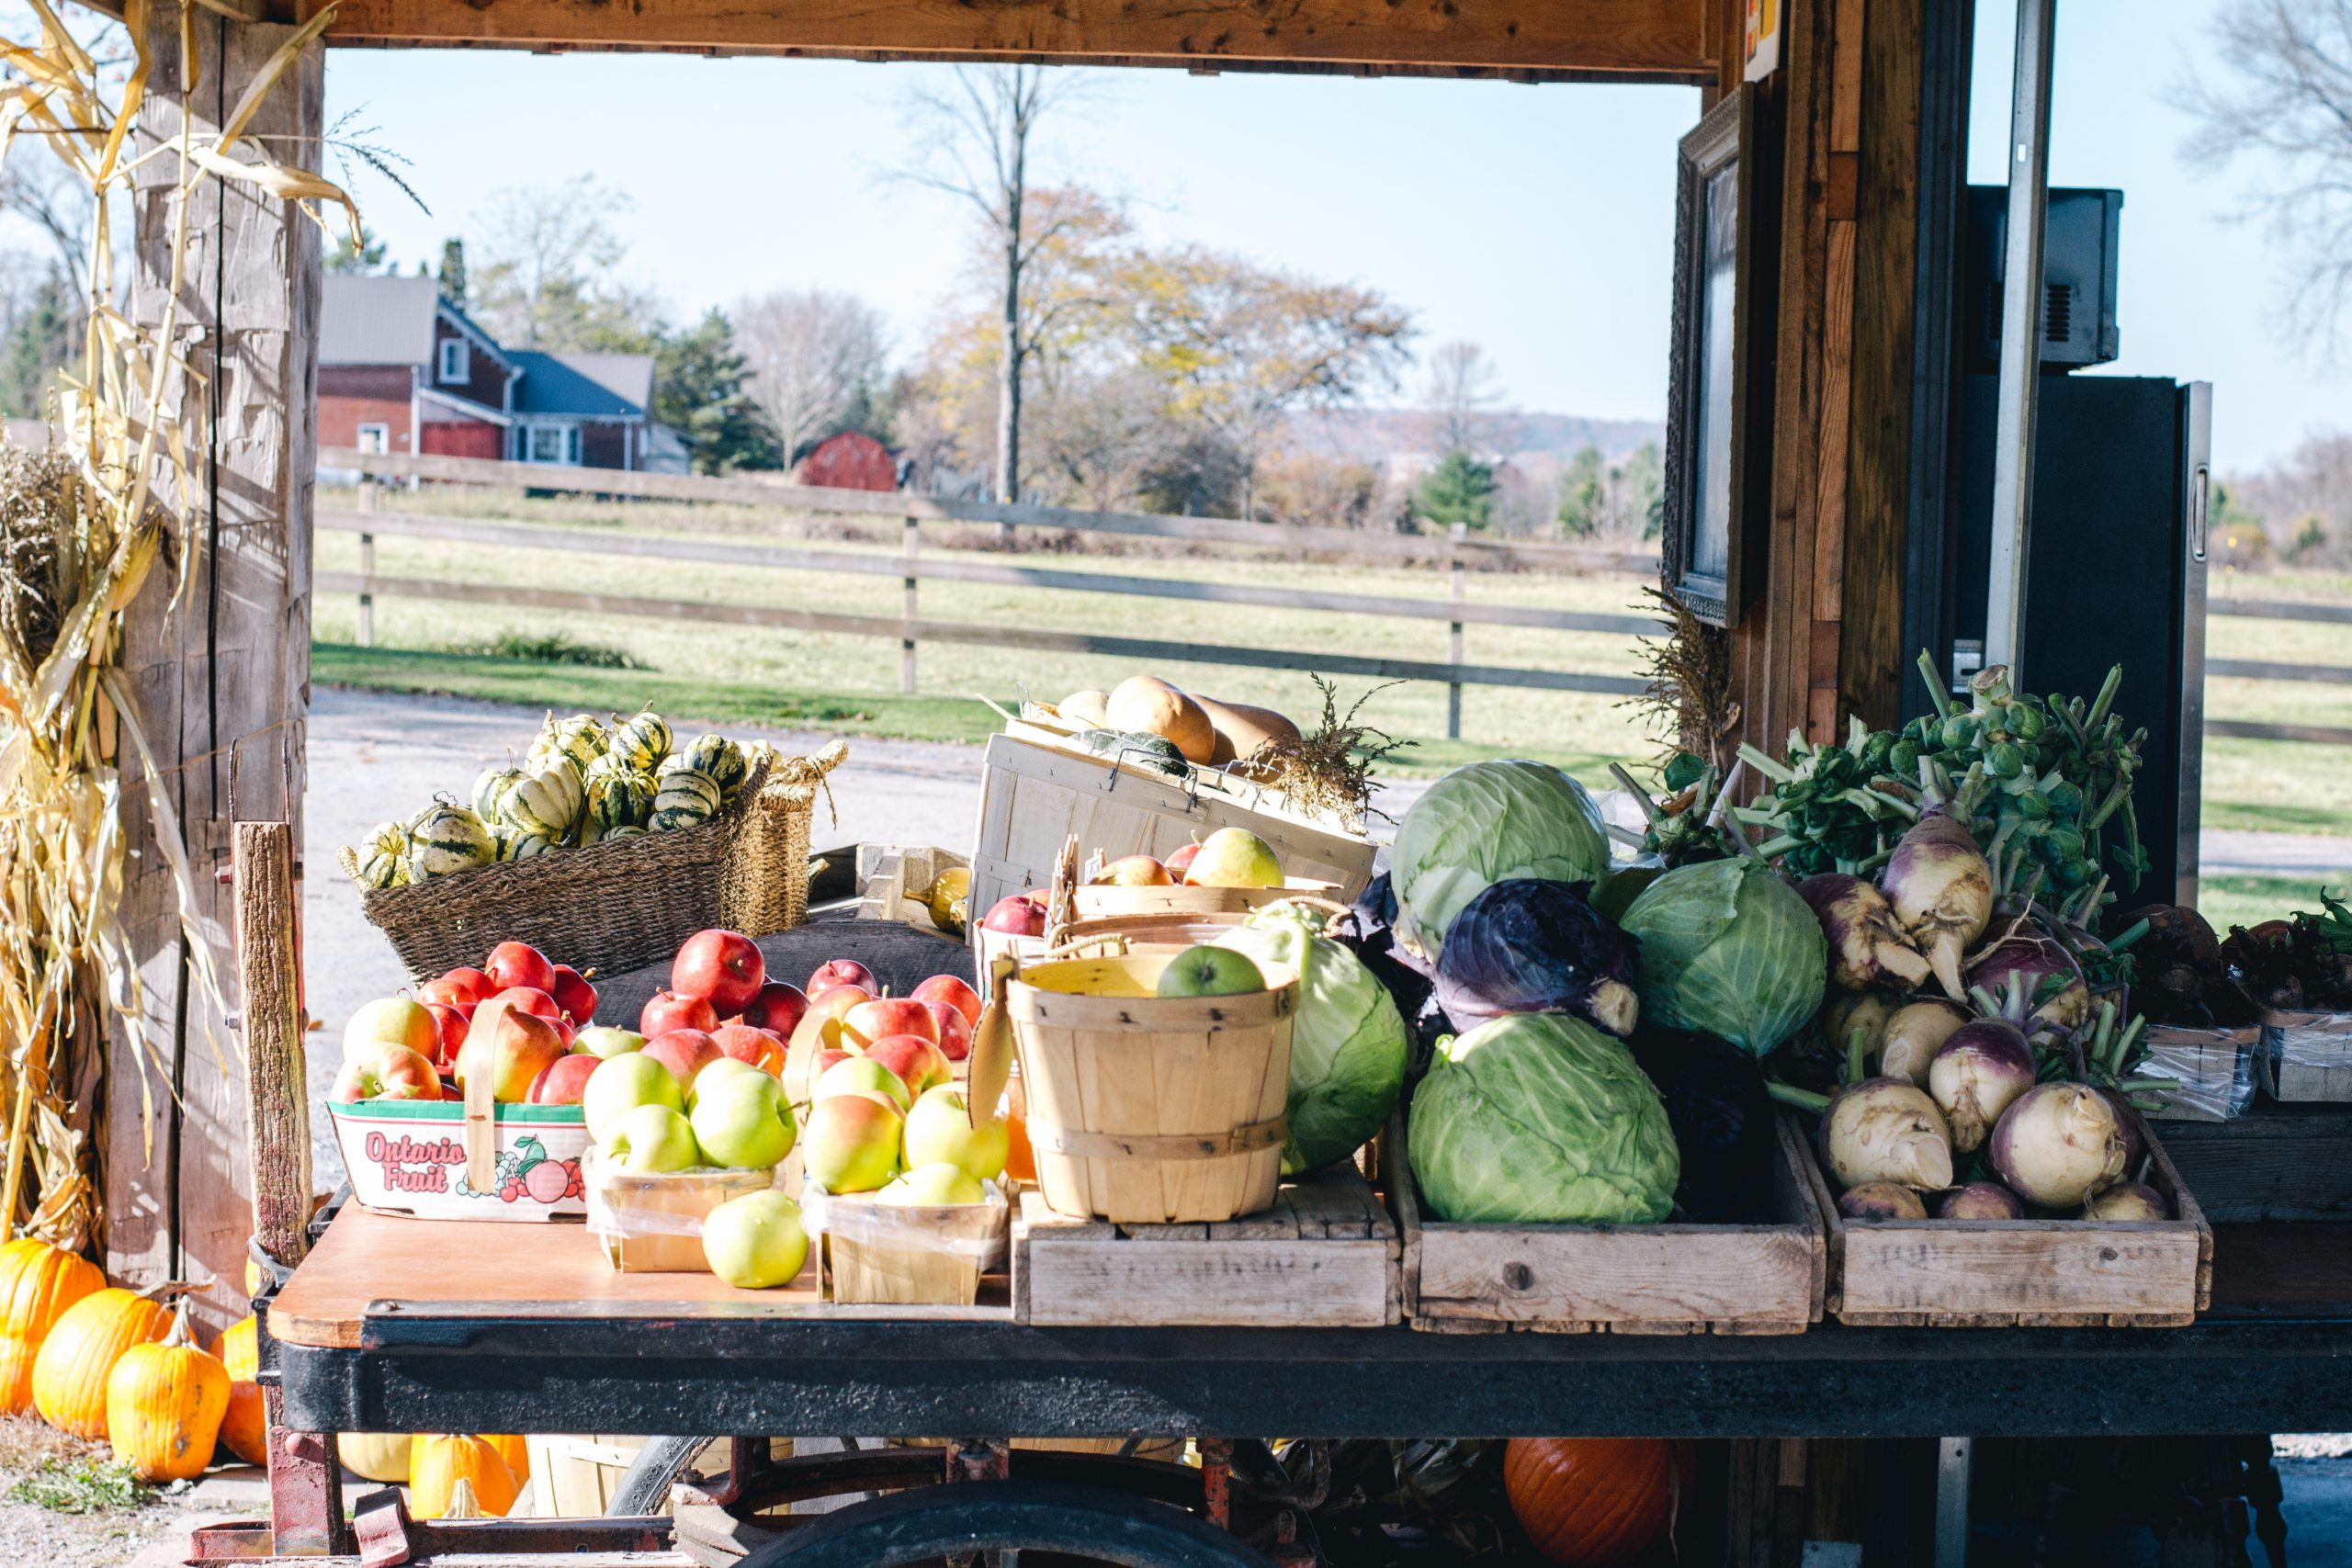 Piles of local, fresh produce at the Willow Creek Farms farm stand.